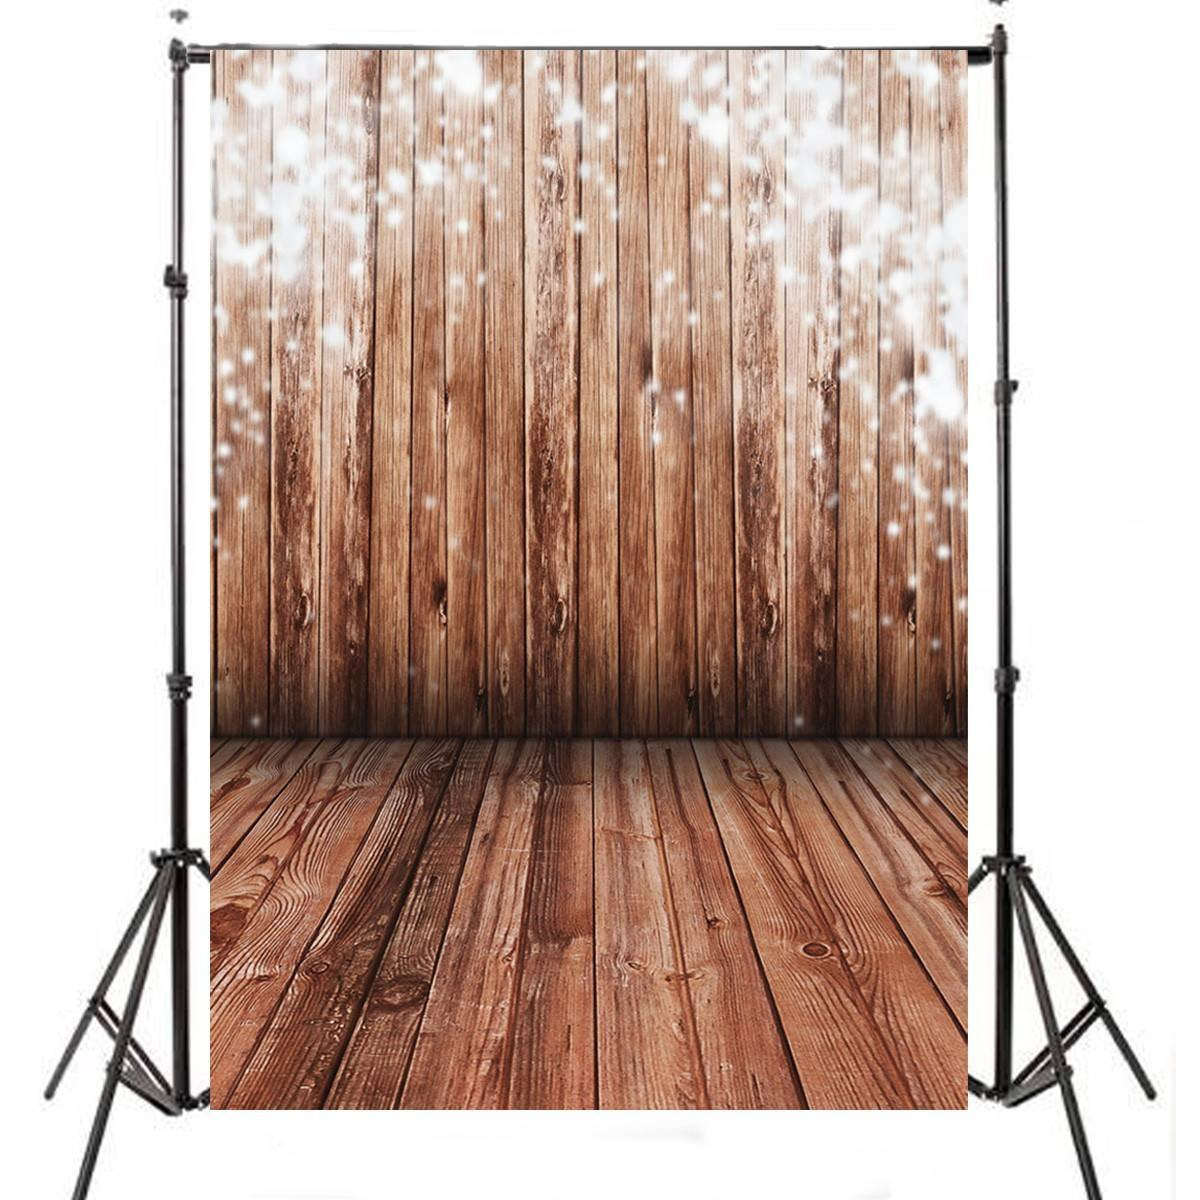 5x7FT Wood Wall Vinyl Photography Backdrop Photo Background Studio Props High Quality New Best Price kate 5x7ft blue graffiti planks backdrop colorful surfboards beach background children summer travel backdrop for photo studio